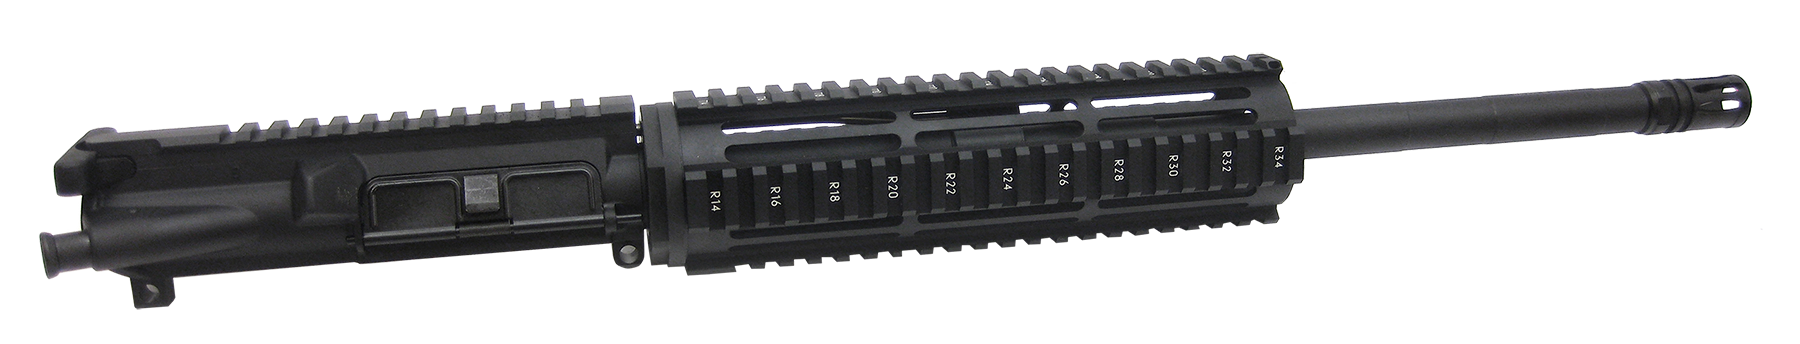 CMMG 30BF827 Upper 300 AAC Blackout Carb 16